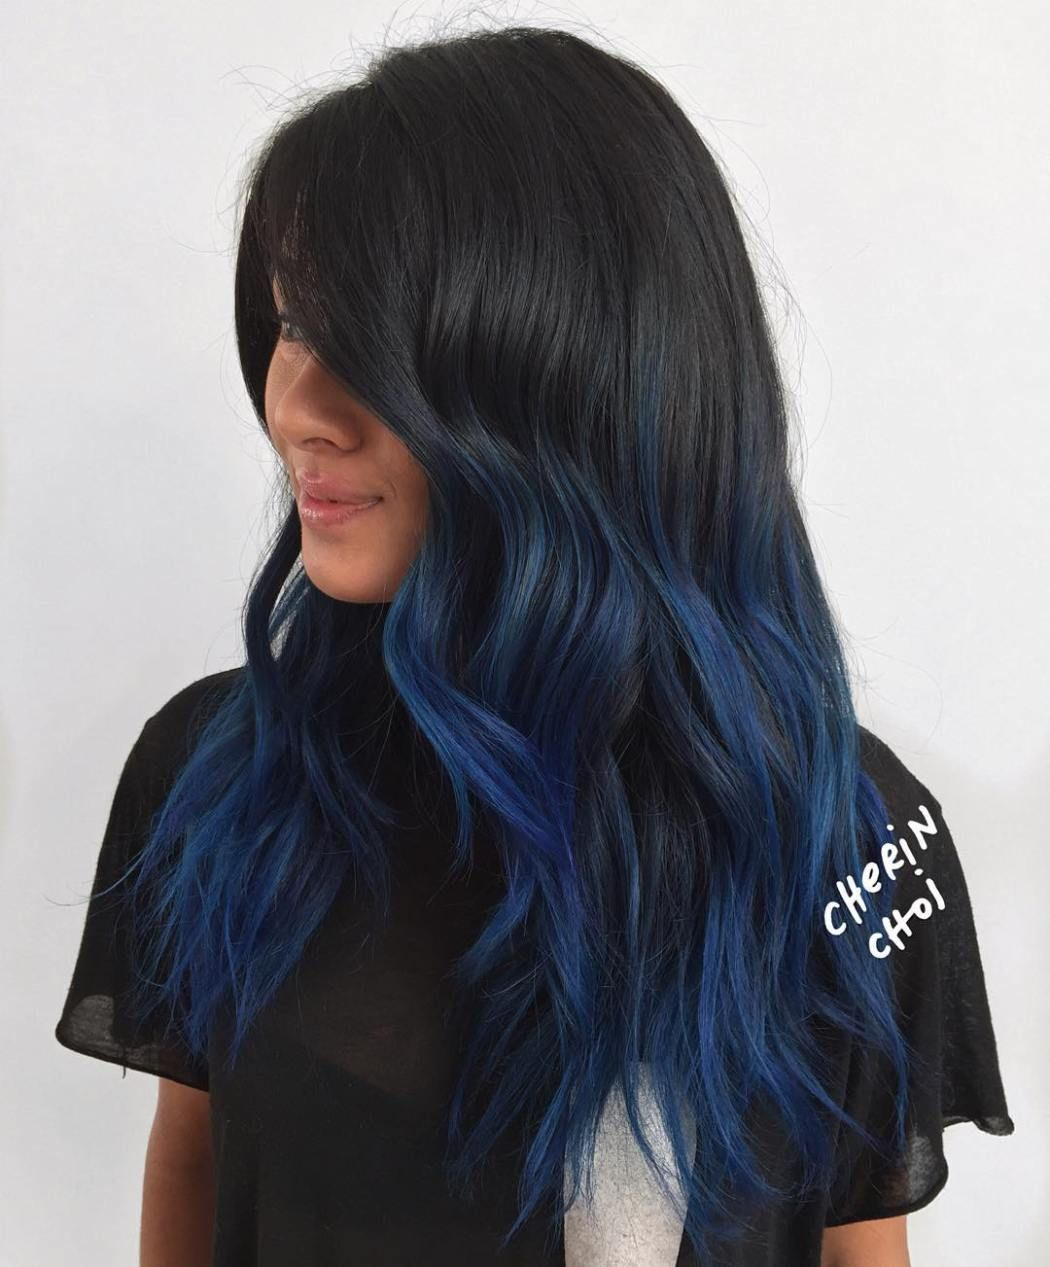 40 Fairy Like Blue Ombre Hairstyles With Images Blue Ombre